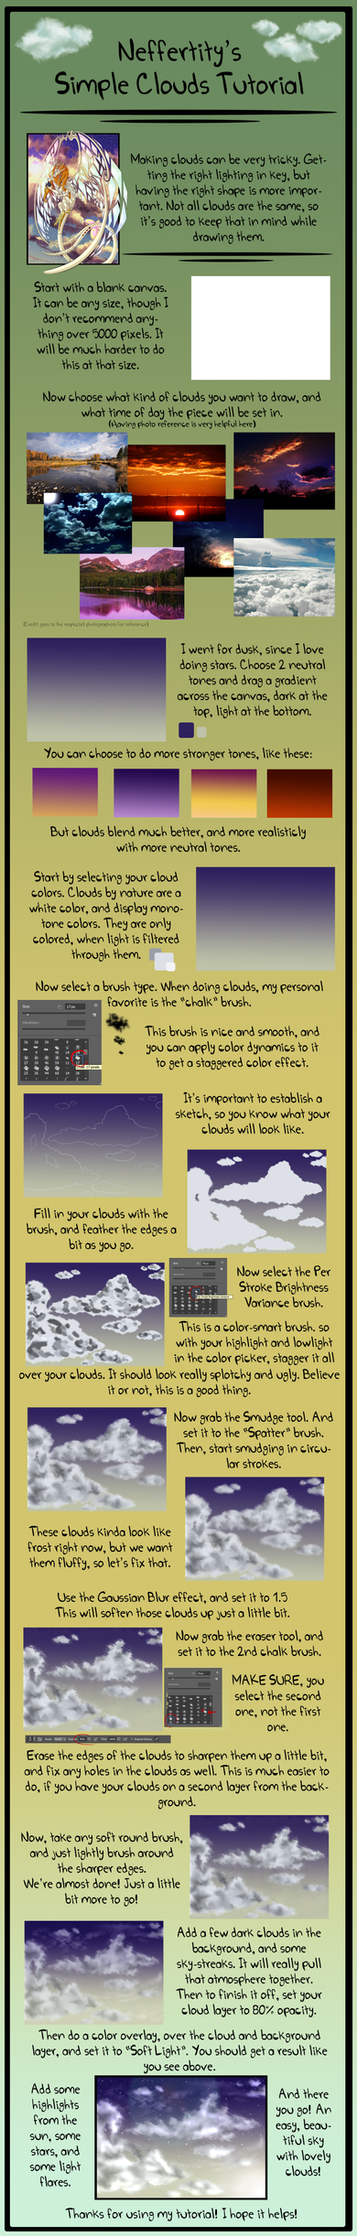 Cloud Tutorial by Neffertity